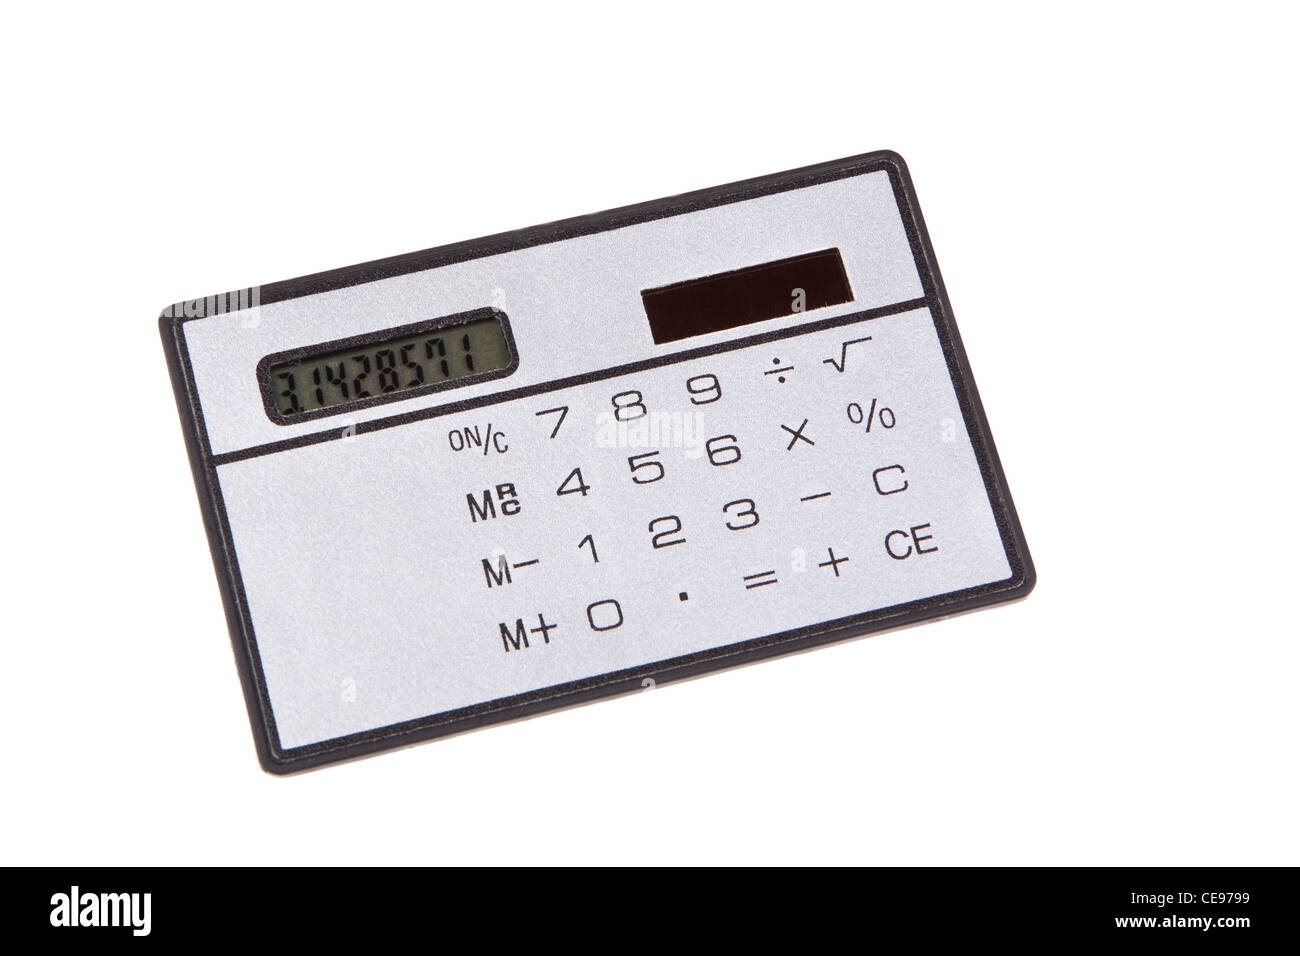 Calculatrice de poche isolated on White Banque D'Images